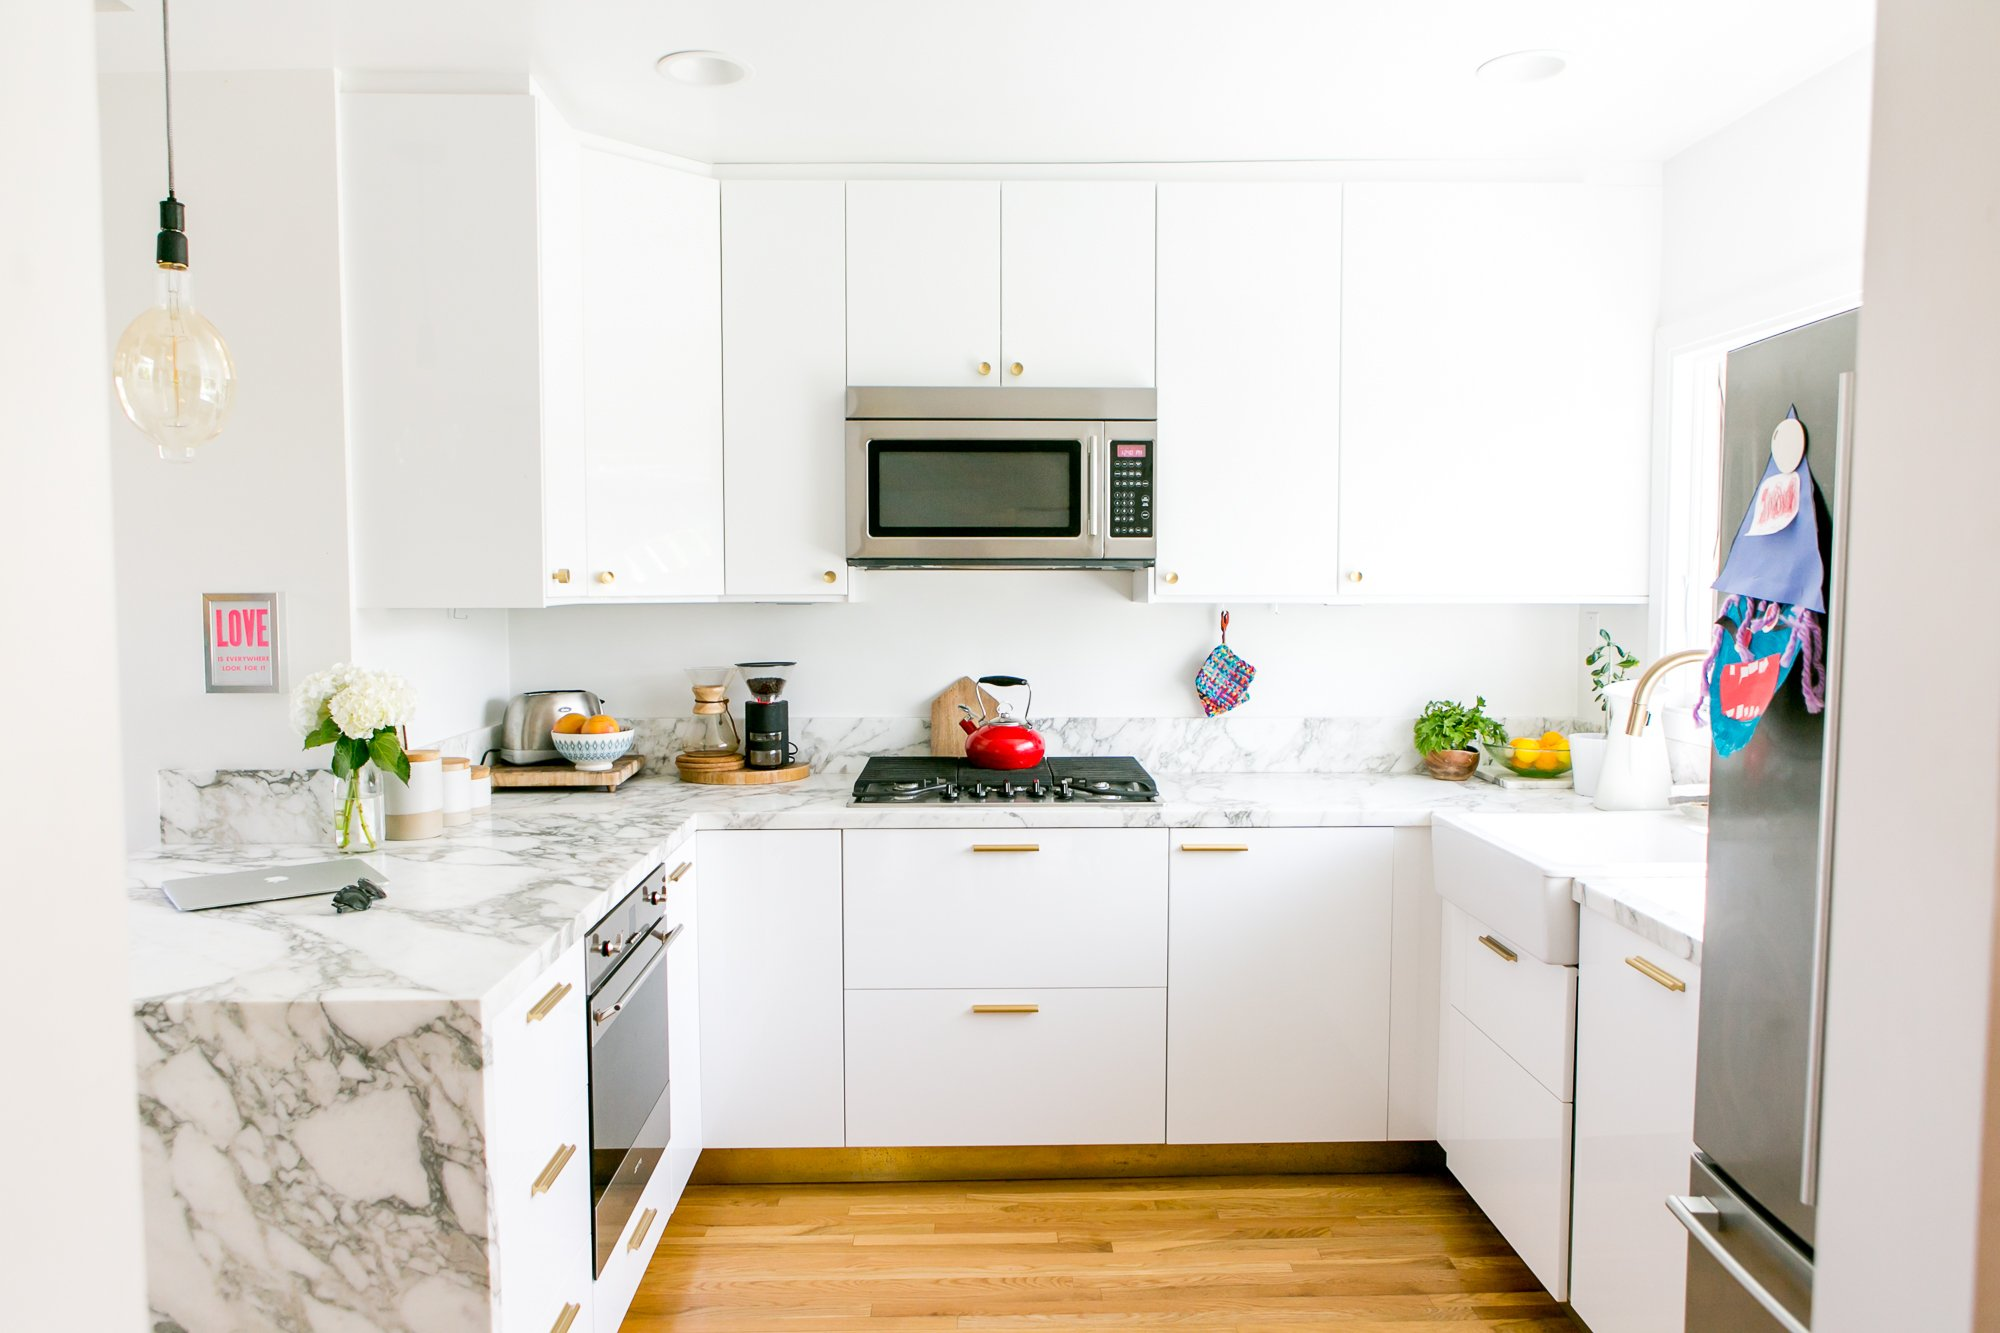 IKEA Kitchens Are On Sale Now! 5 Shopping Secrets You Need To Know